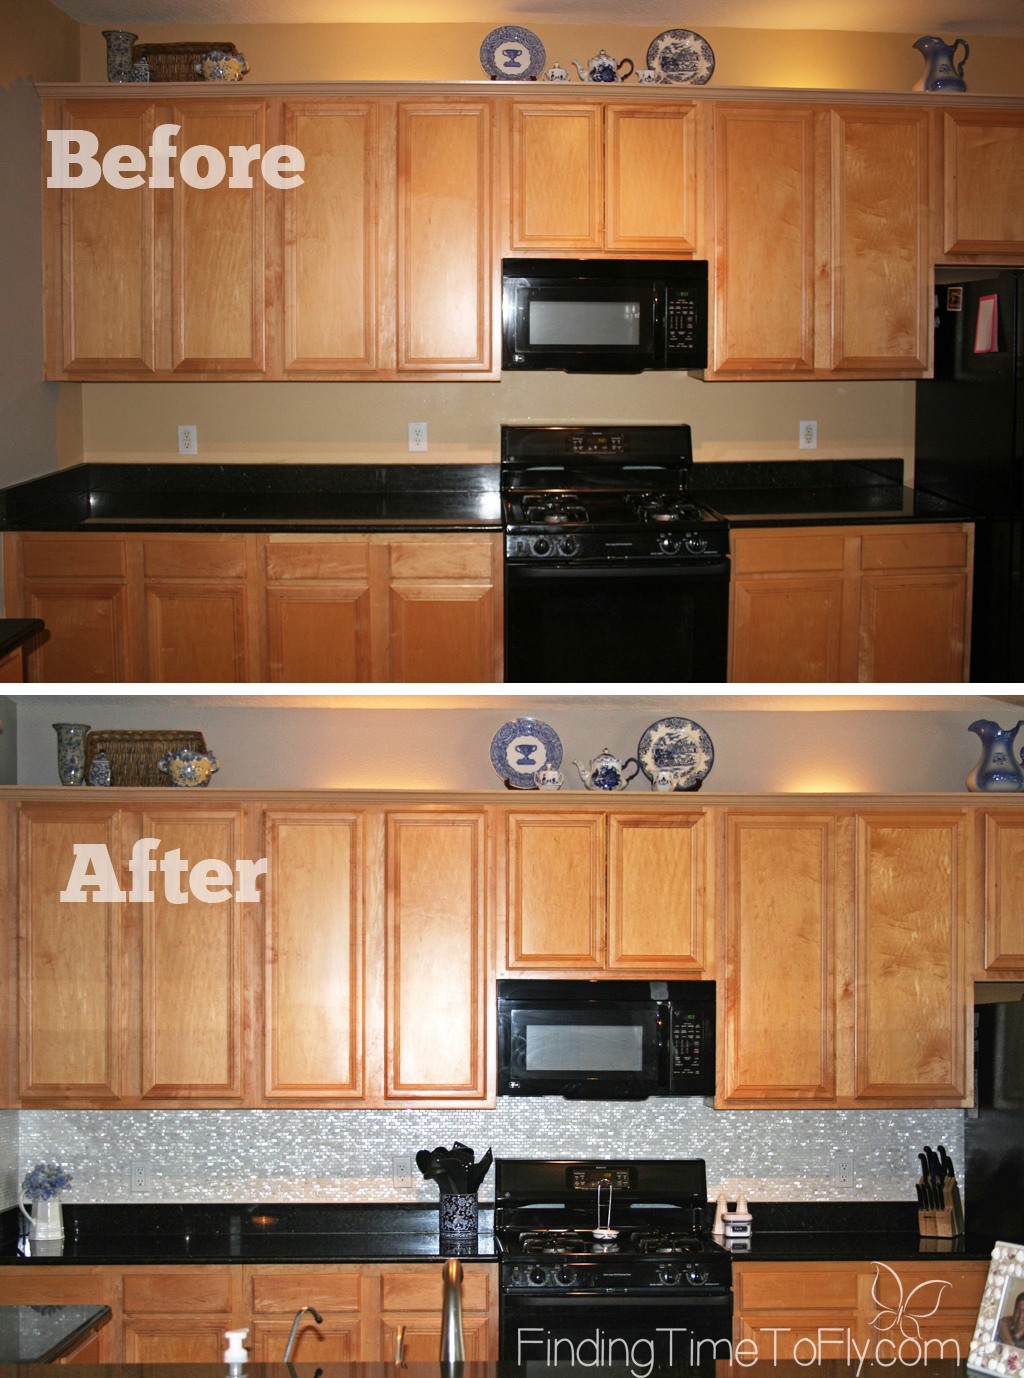 Before and after pics of Mother of Pearl mosaic tile backsplash and black granite countertops. Gorgeous!